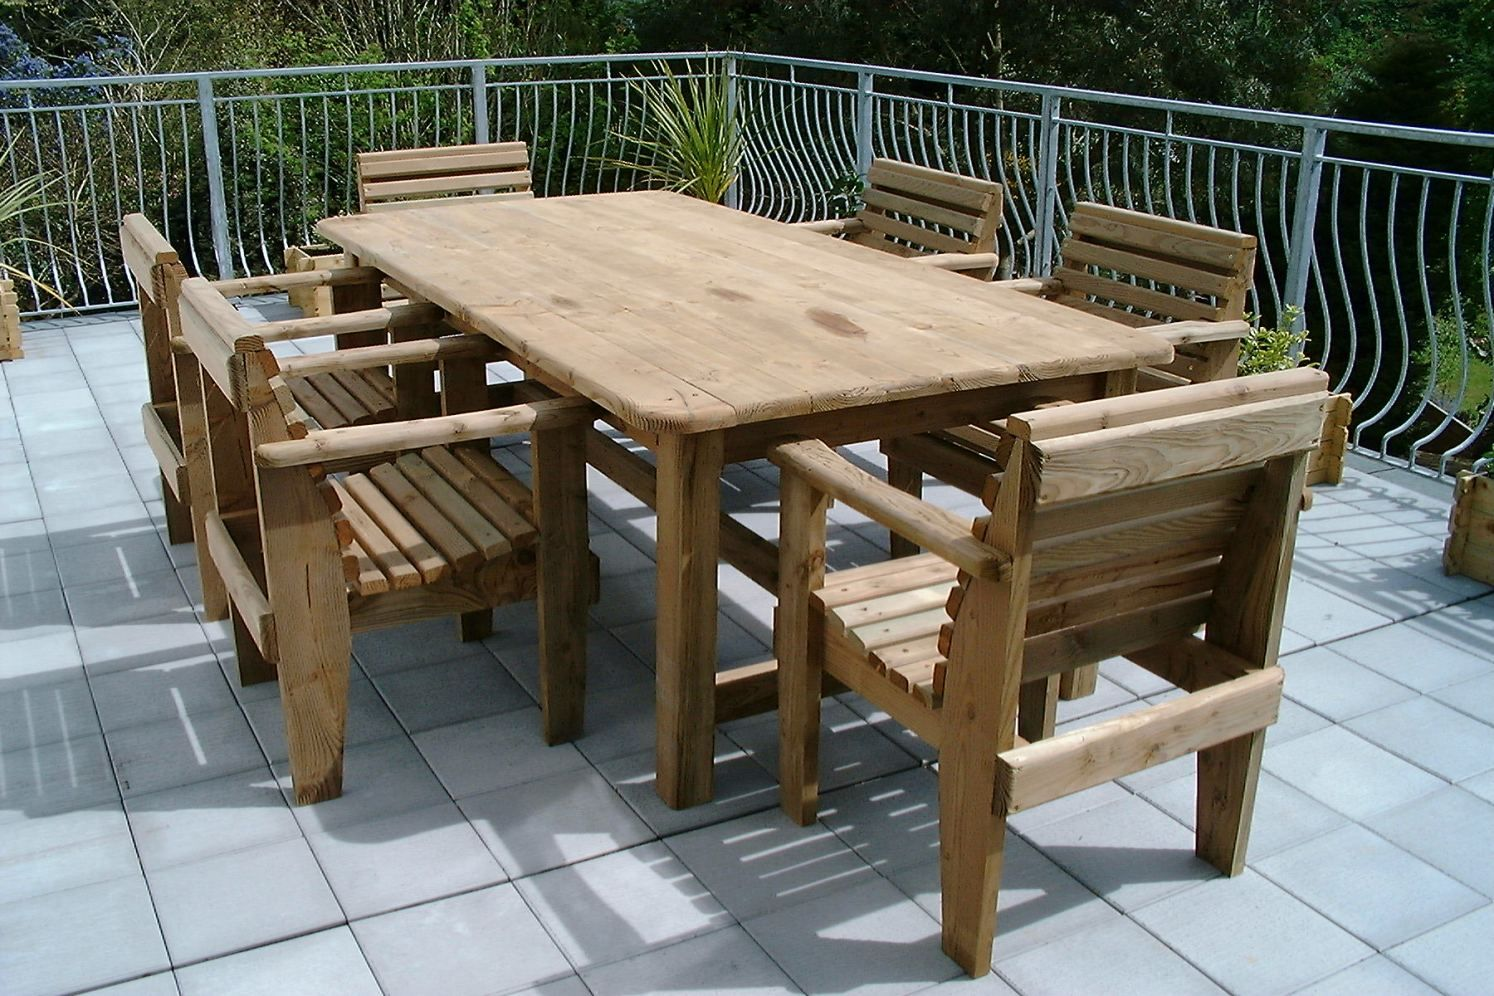 Outdoor Dining Table Superb Design Ideas With Images Garden Table And Chairs Wooden Garden Table Teak Outdoor Furniture